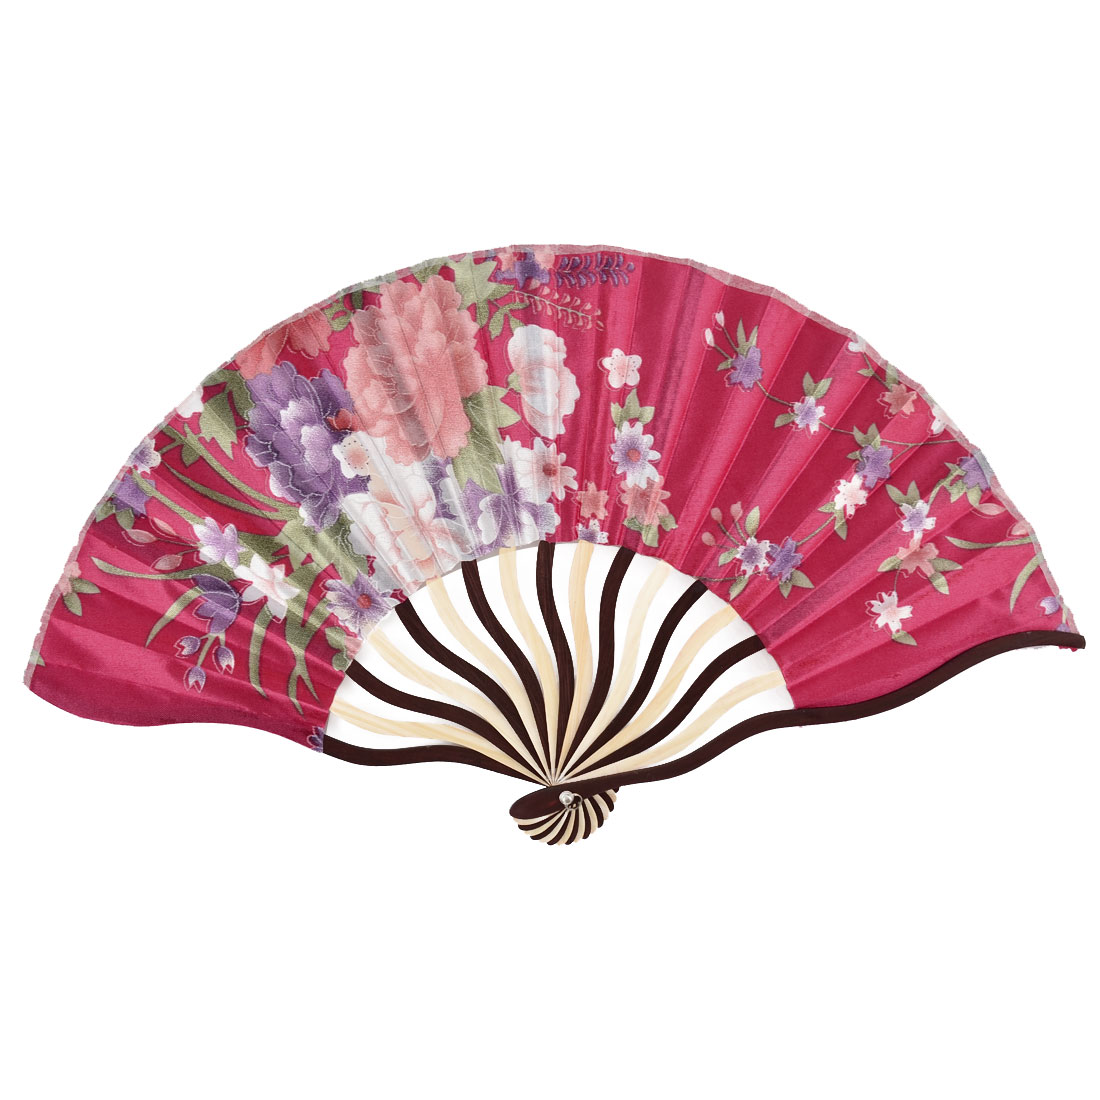 Bamboo Ribs Flower Pattern Summer Cool Portable Folding Hand Fan Fuchsia w Bag